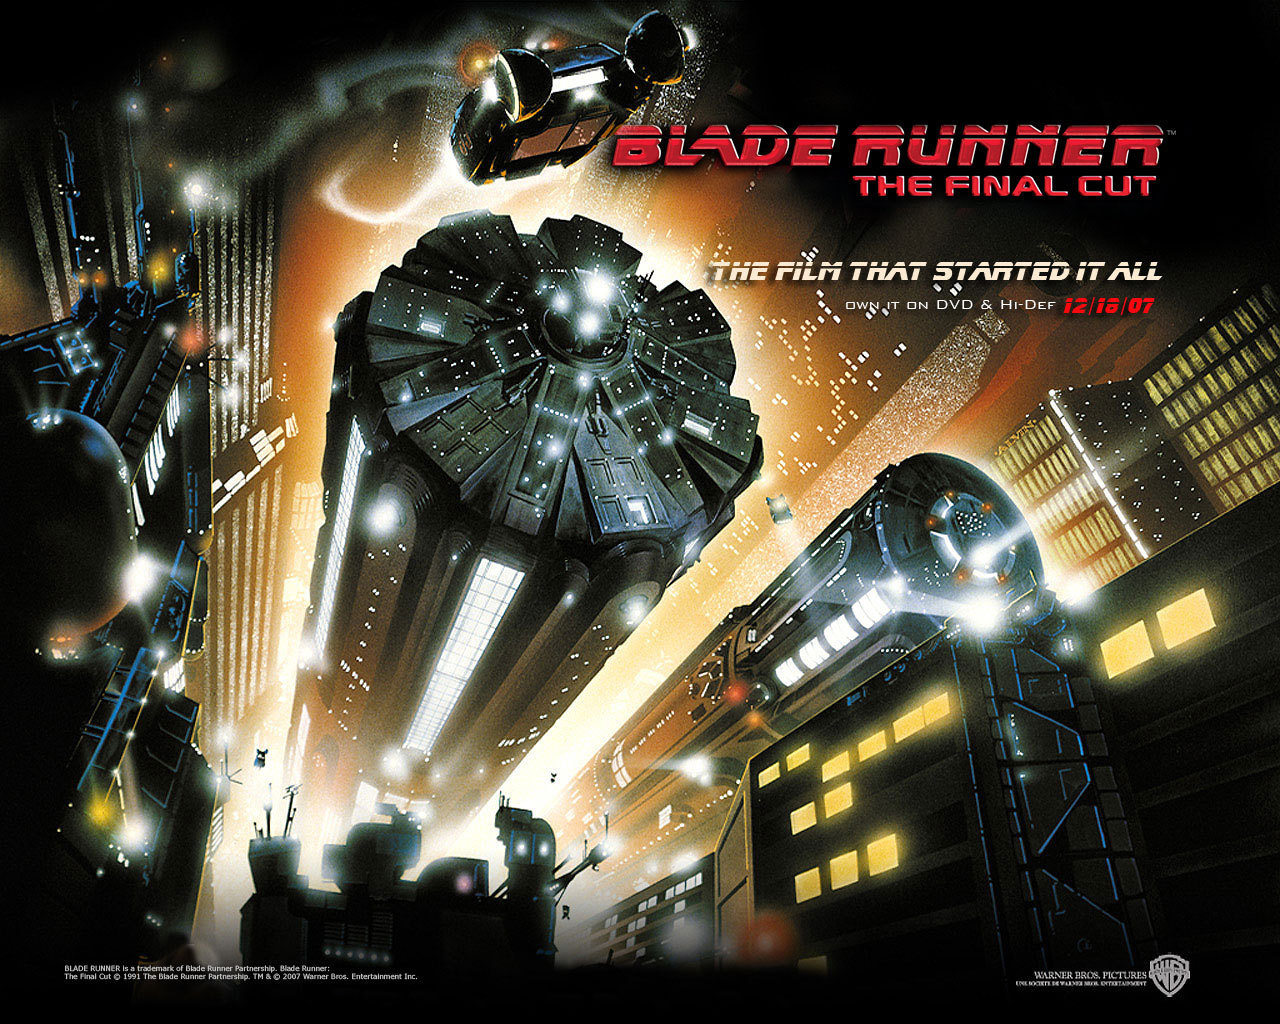 Official Blade Runner Wallpaper   Blade Runner Wallpaper 8207486 1280x1024